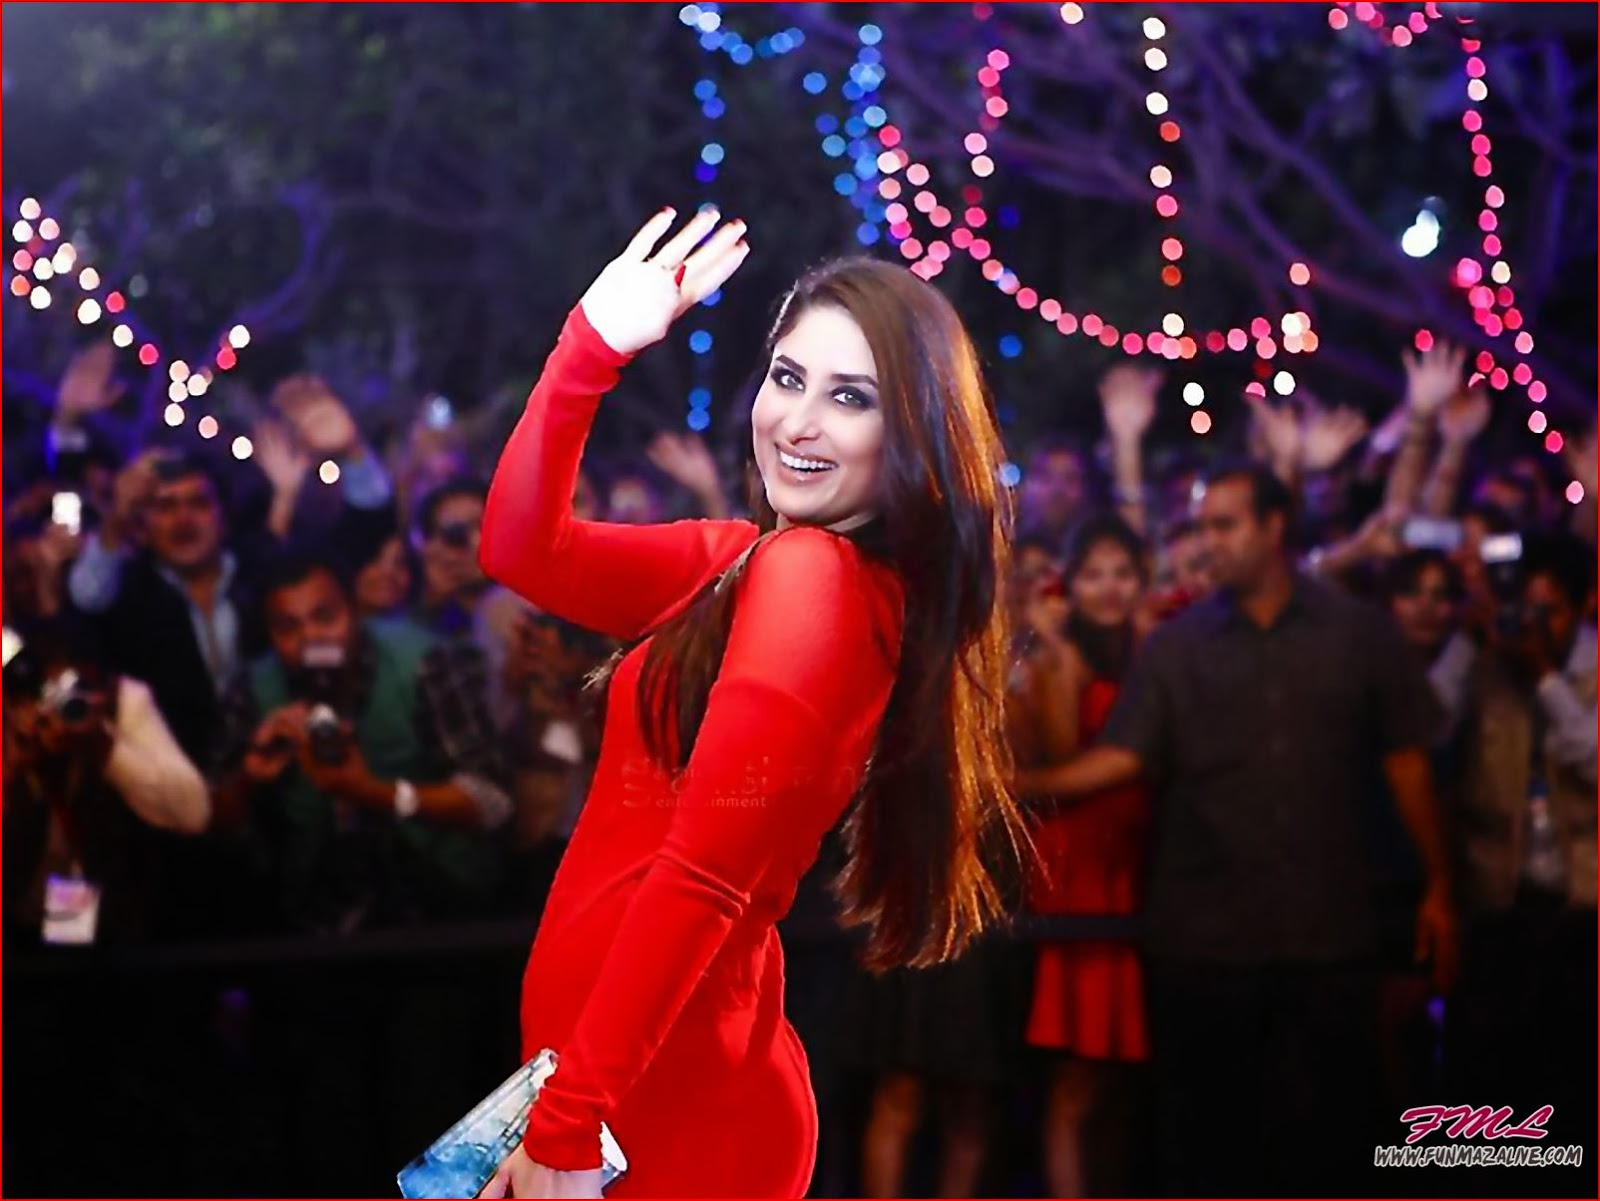 Wallpapers Download Kareena kapoor new wallpapers 2014 Kareena 1600x1201